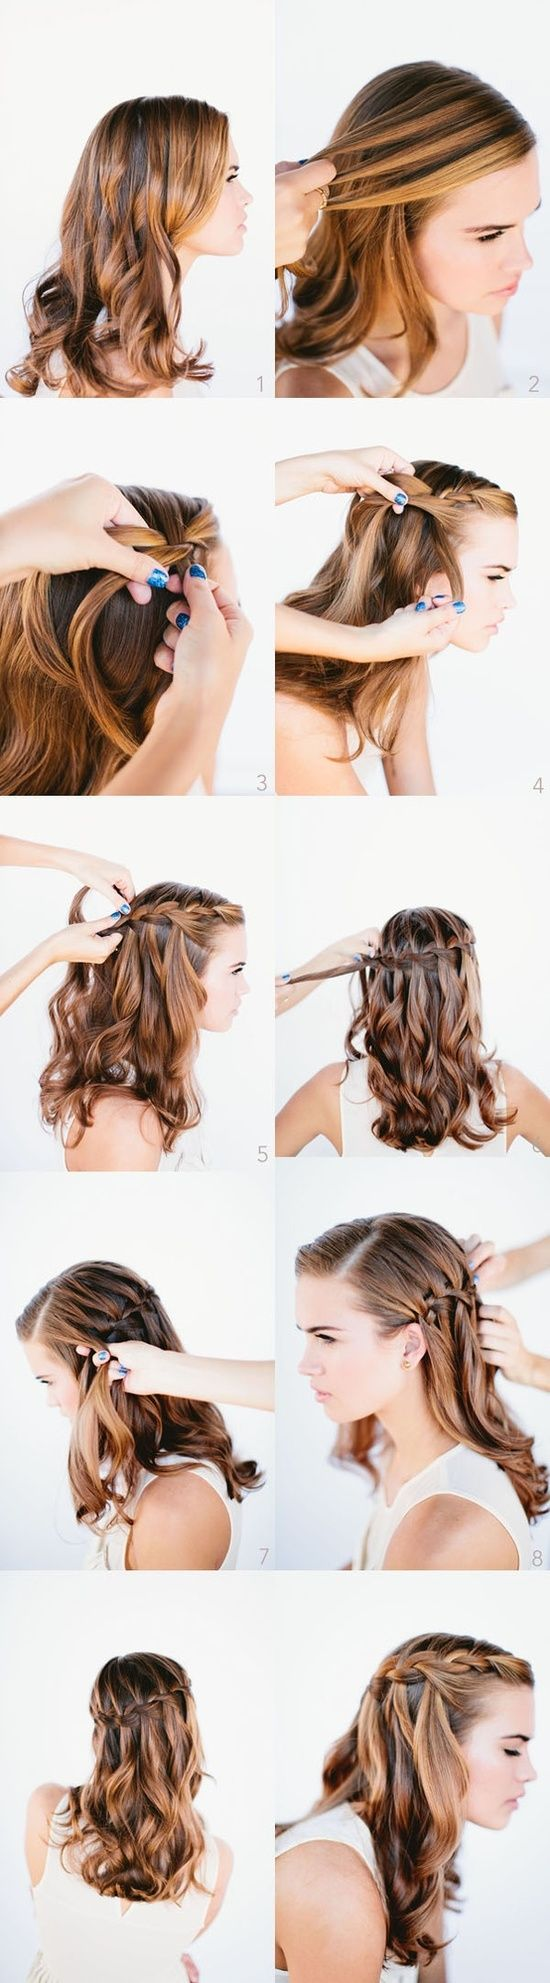 best hair images on pinterest amazing hairstyles board and